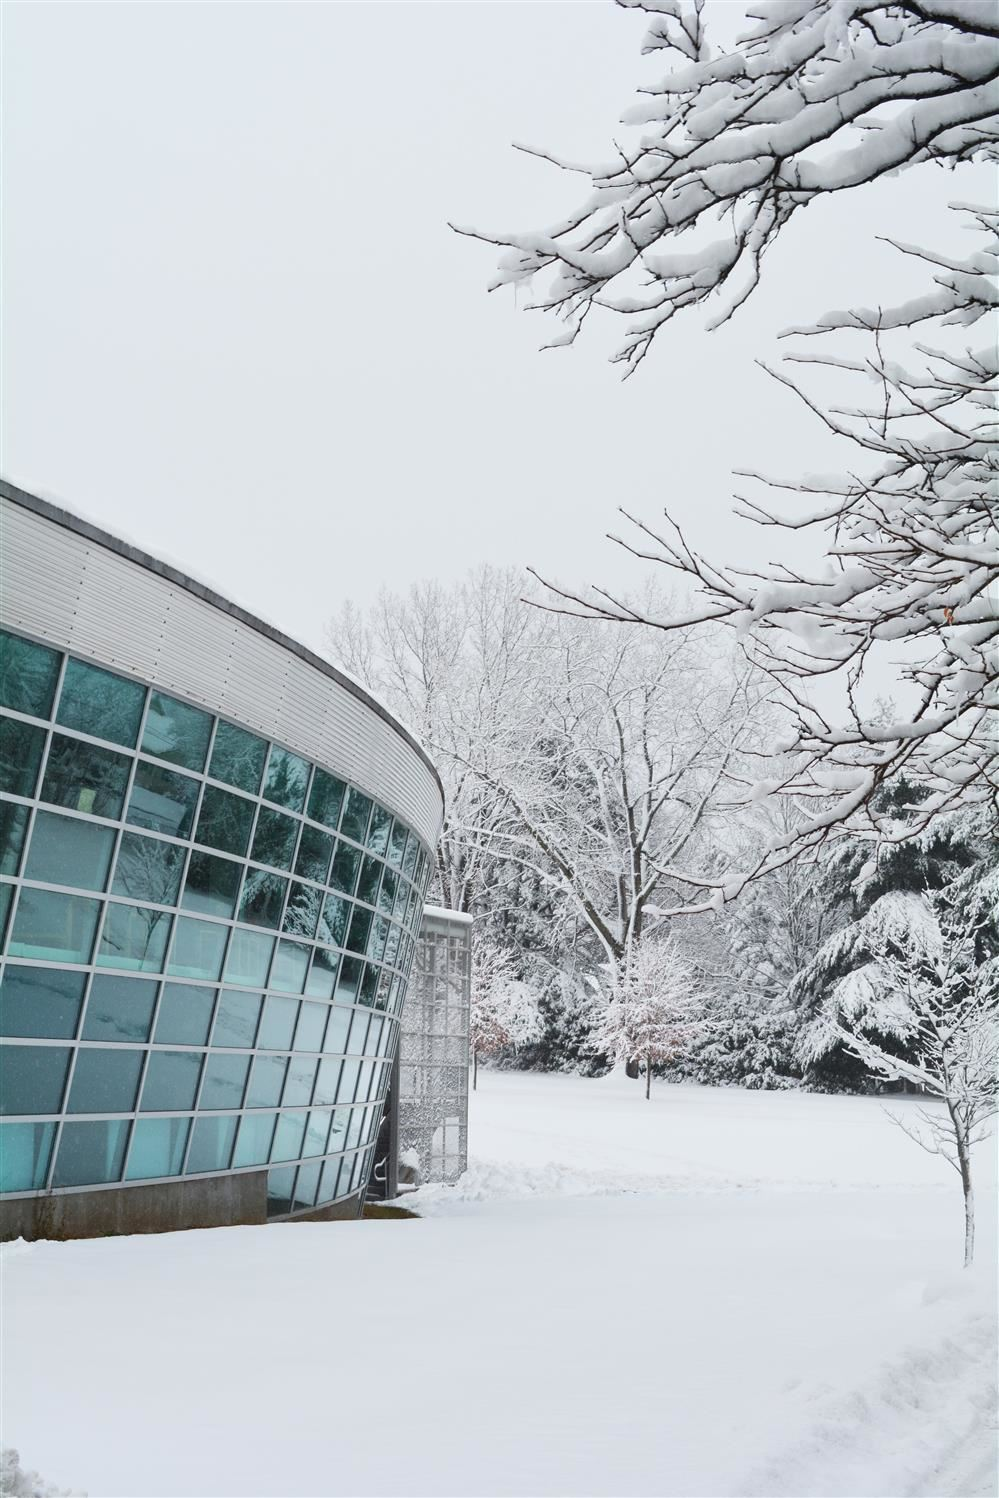 Library view from the outside with snow